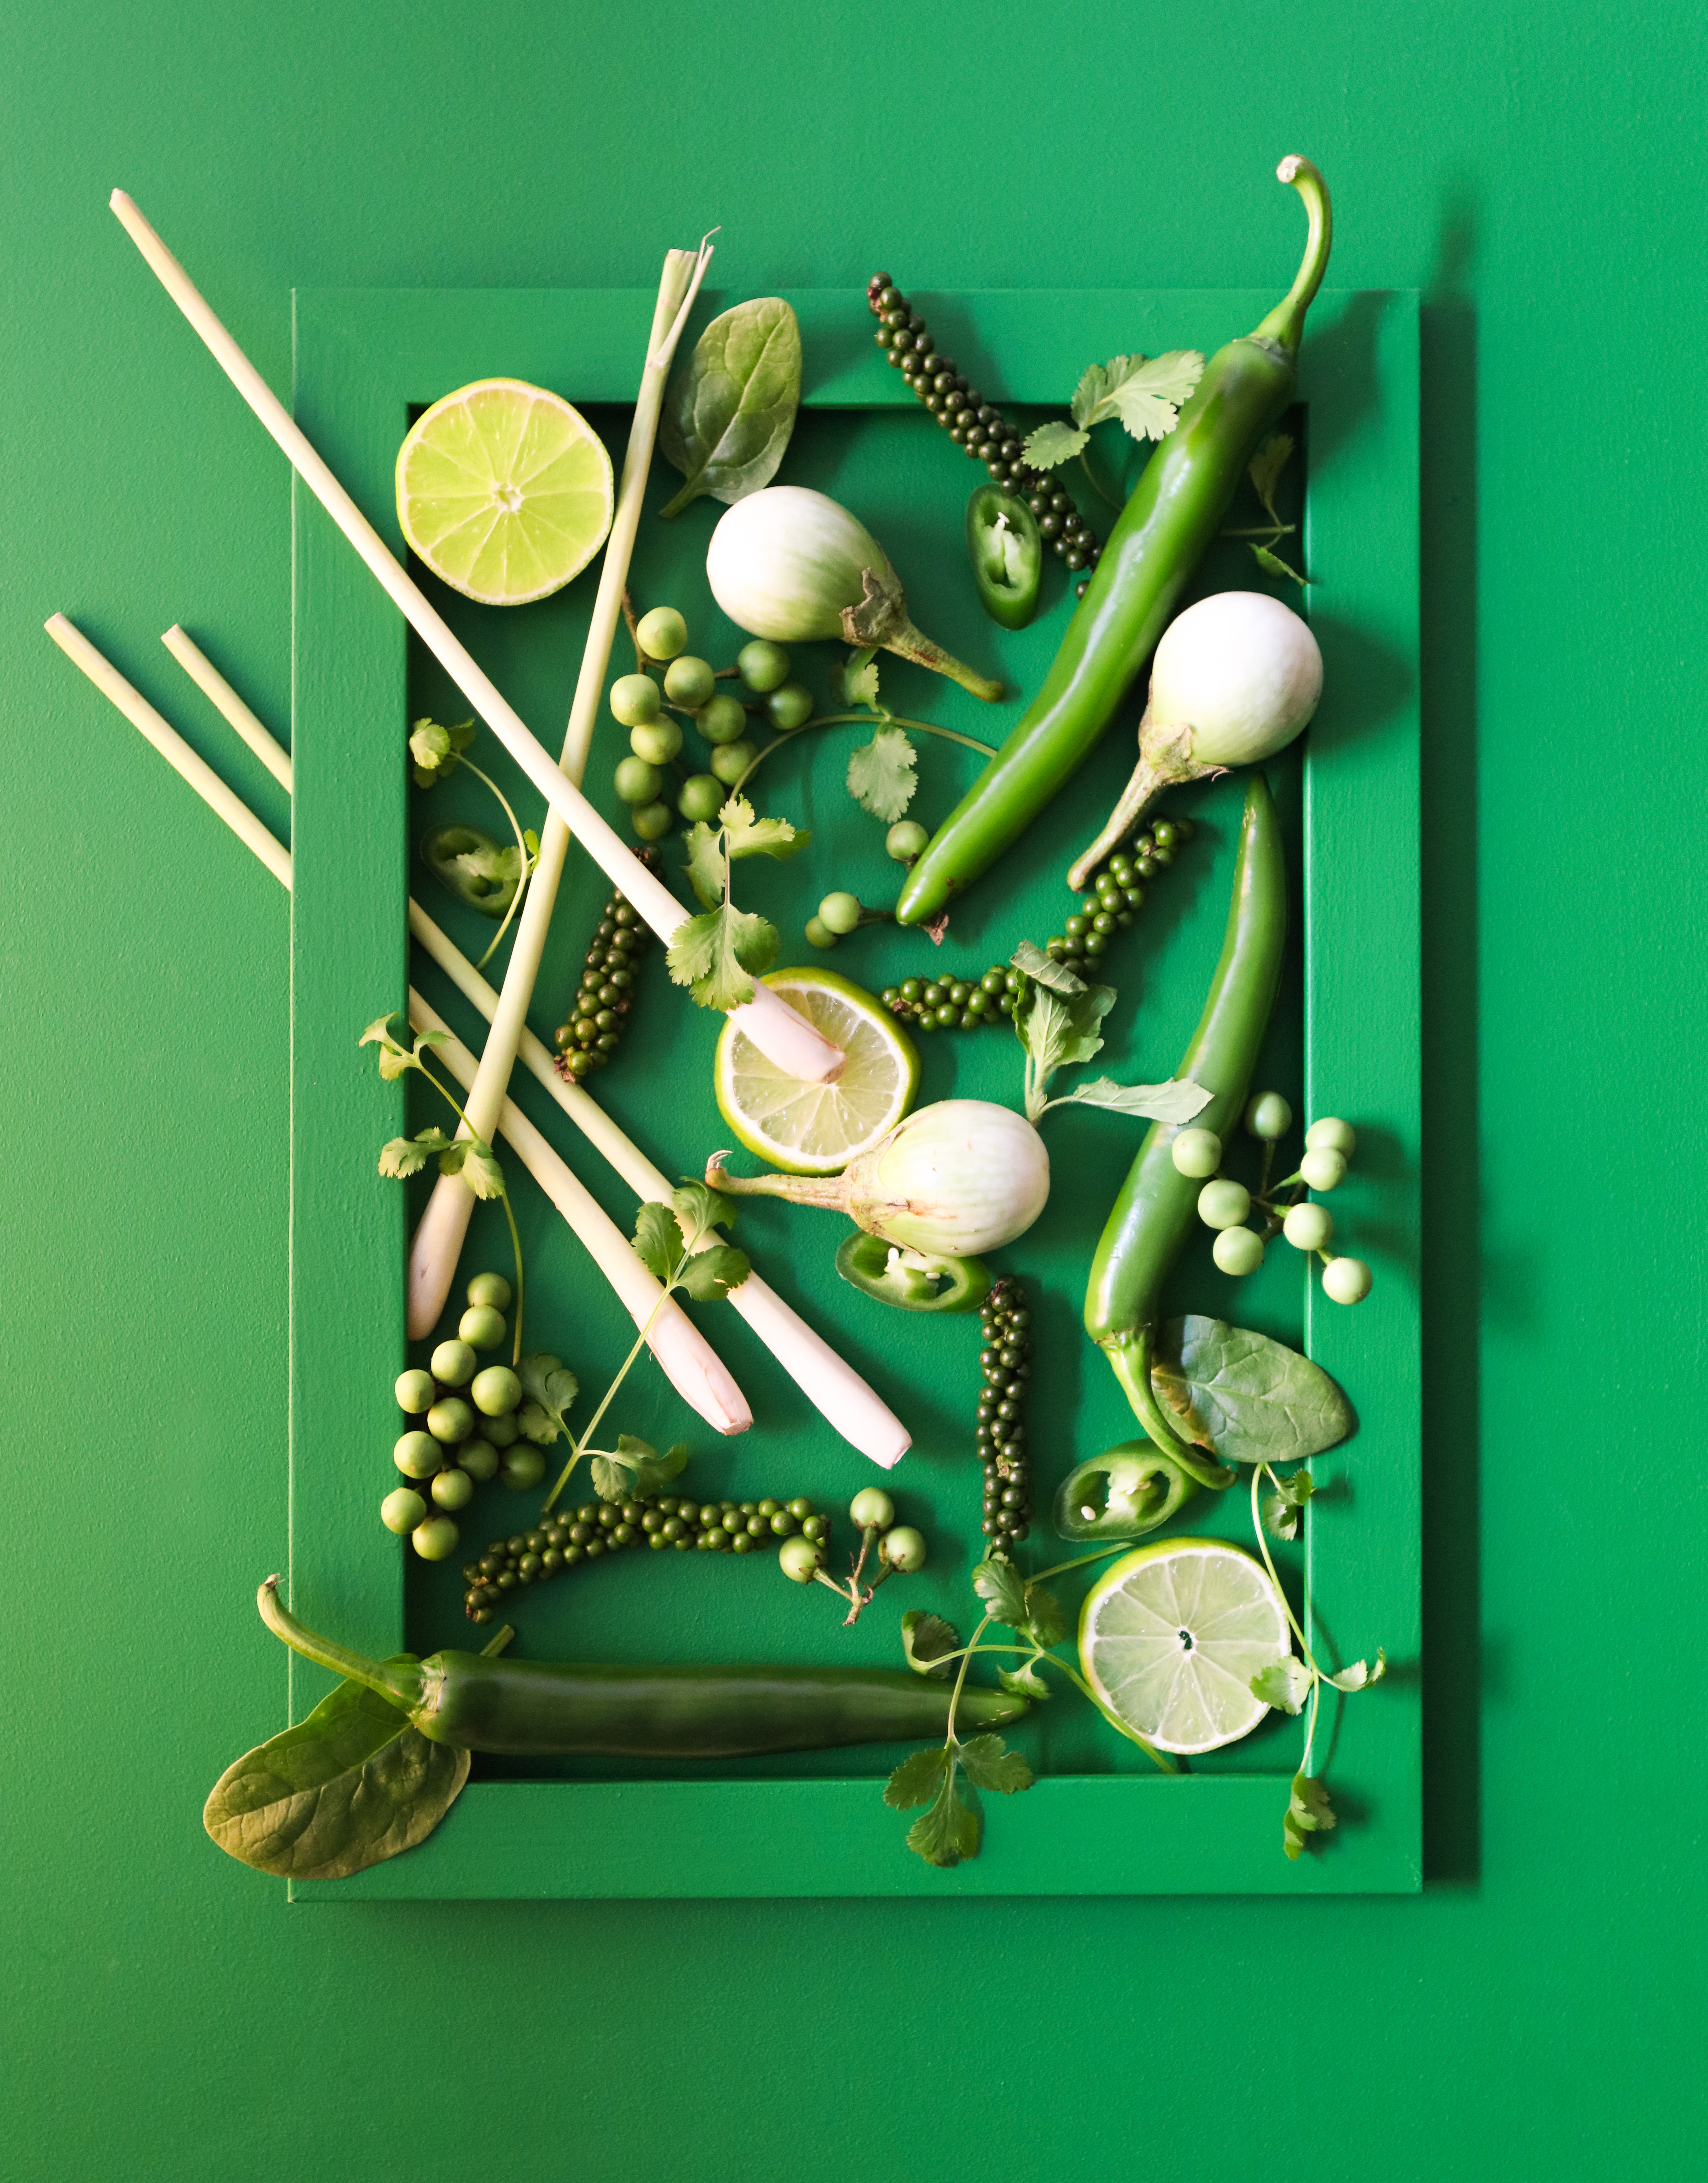 A green frame filled with green thai ingredients such as holy basil to create a framed artwork piece